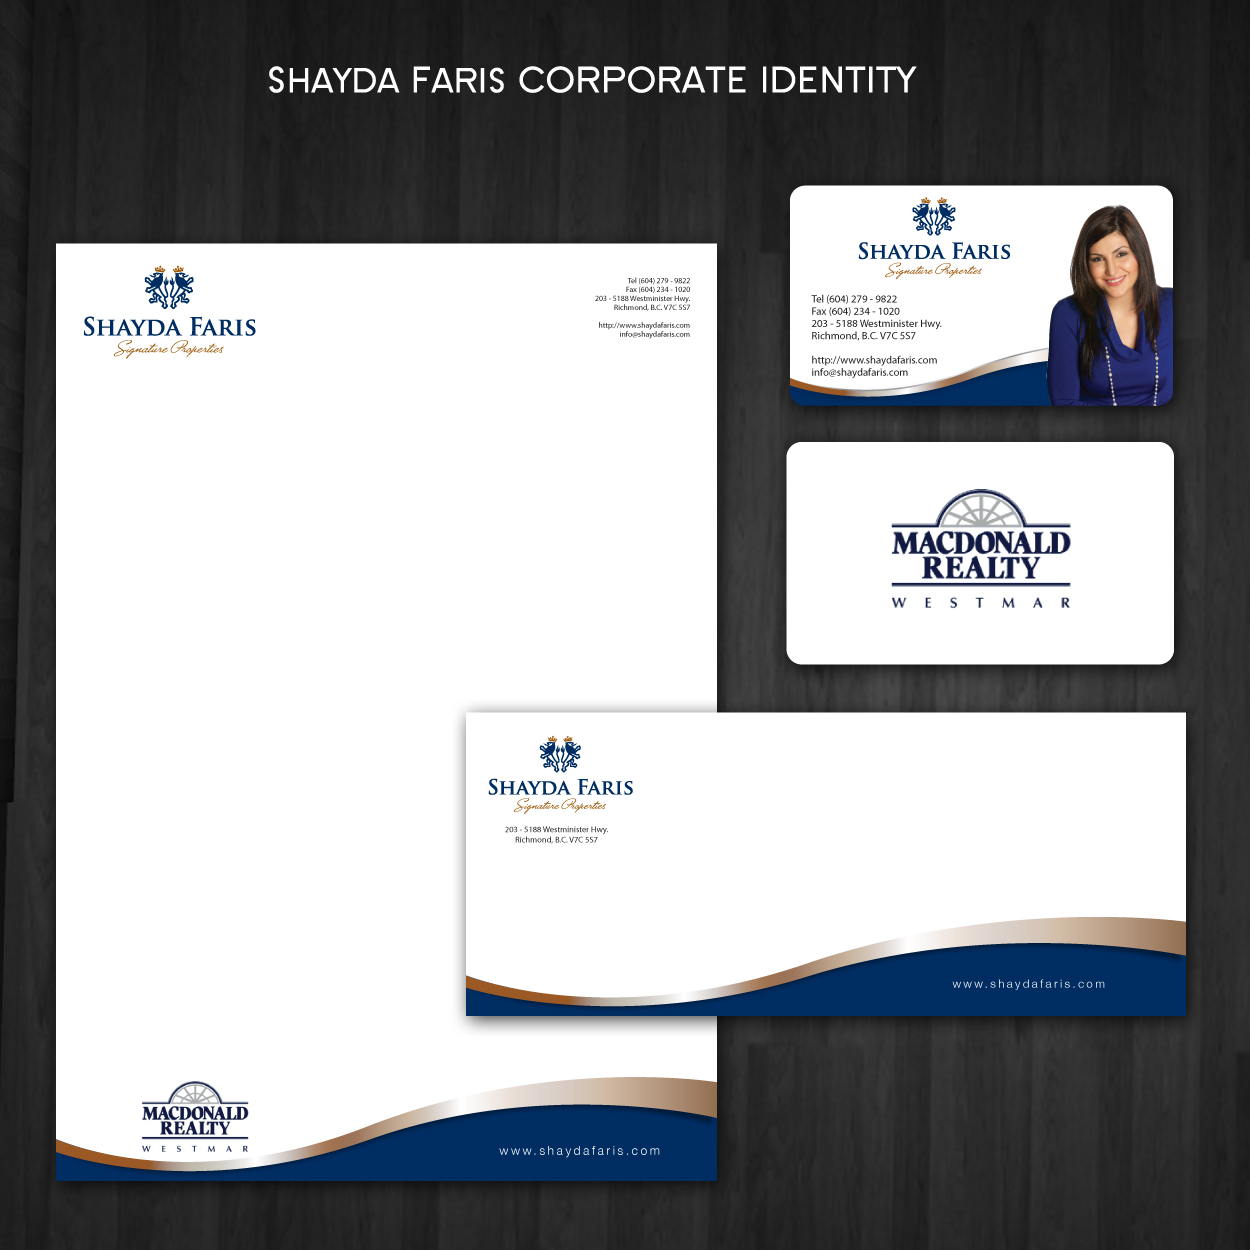 Business Card Design by storm - Entry No. 39 in the Business Card Design Contest Unique Stationery Design Wanted for Shayda Faris.